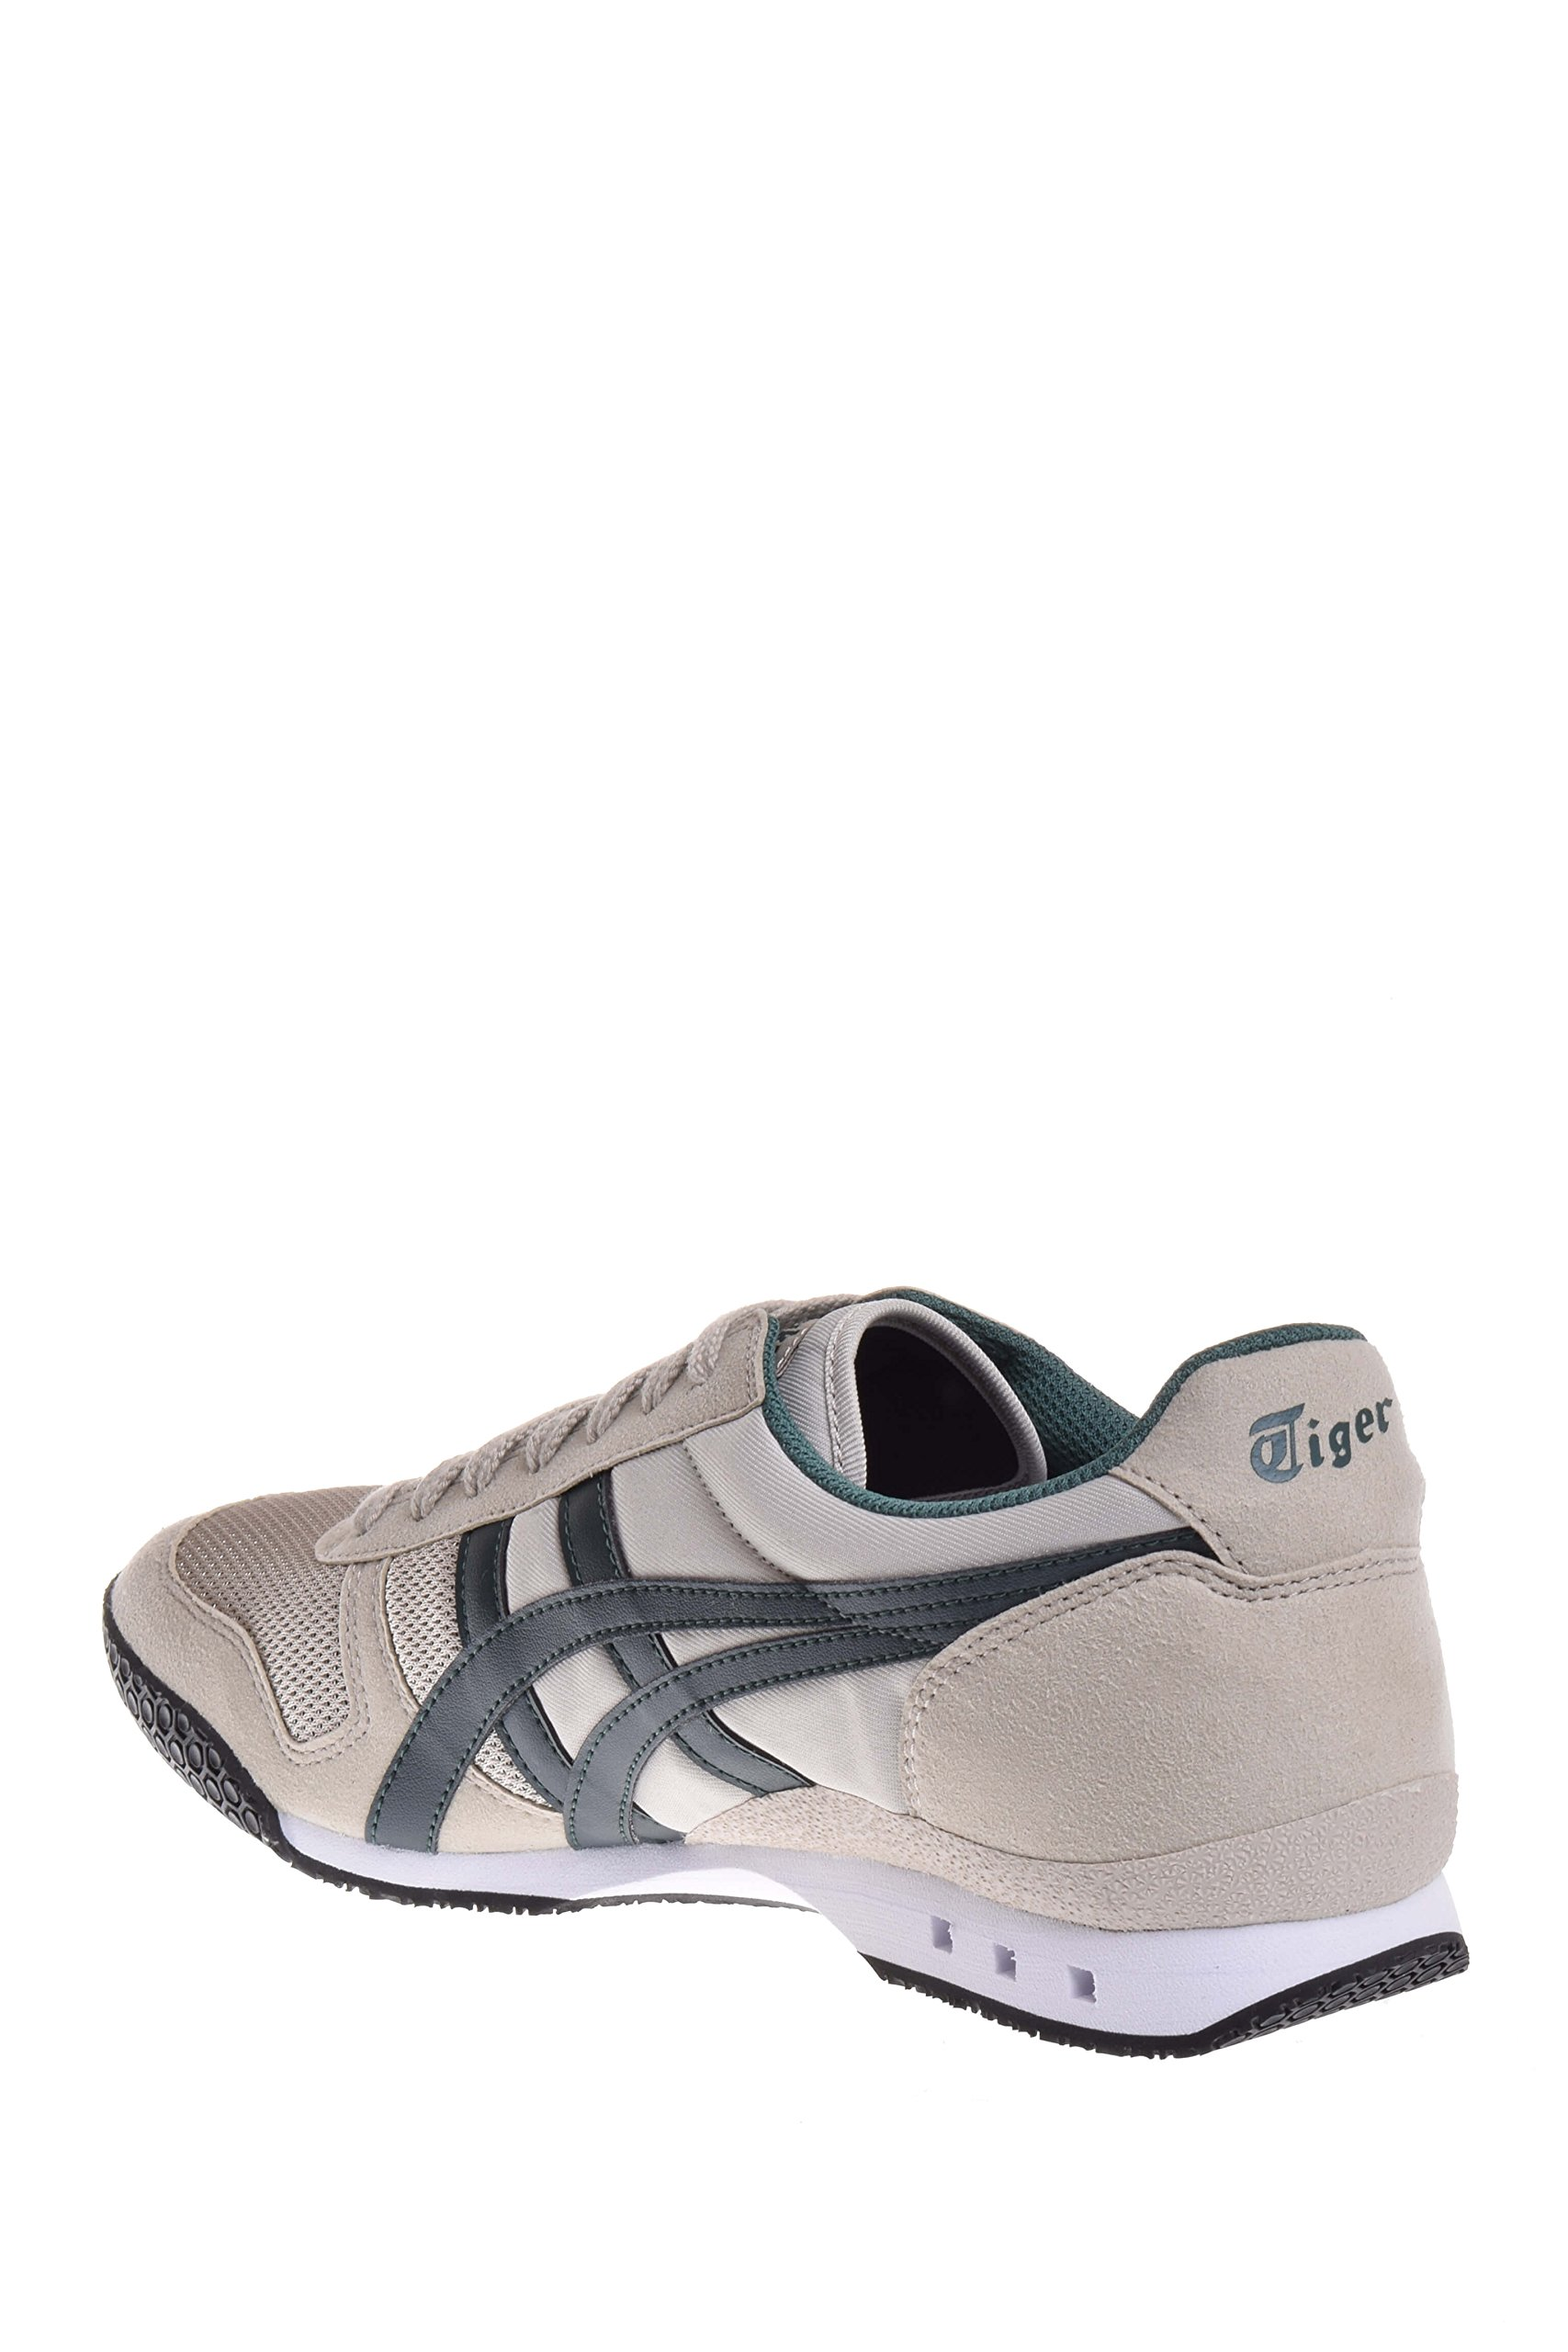 brand new df7c0 971cd Ultimate 81 Mens in Feather Grey/Hampton Green by Onitsuka Tiger, 8